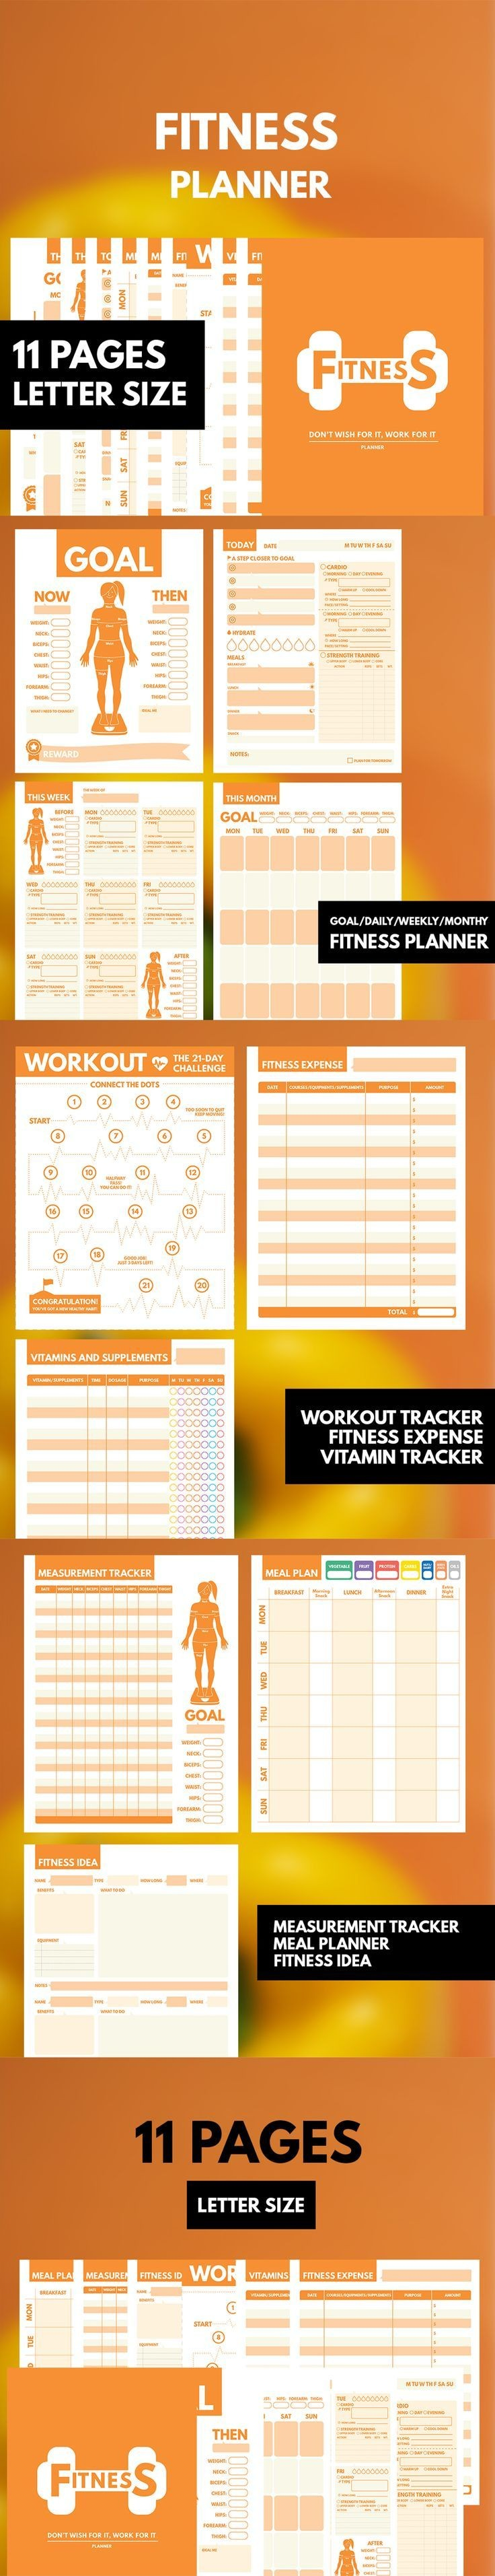 Fitness Planner Printable Letter Workout Planner Fitness Journal Printable Health Planner Exercise Planner Weekly Daily Workout